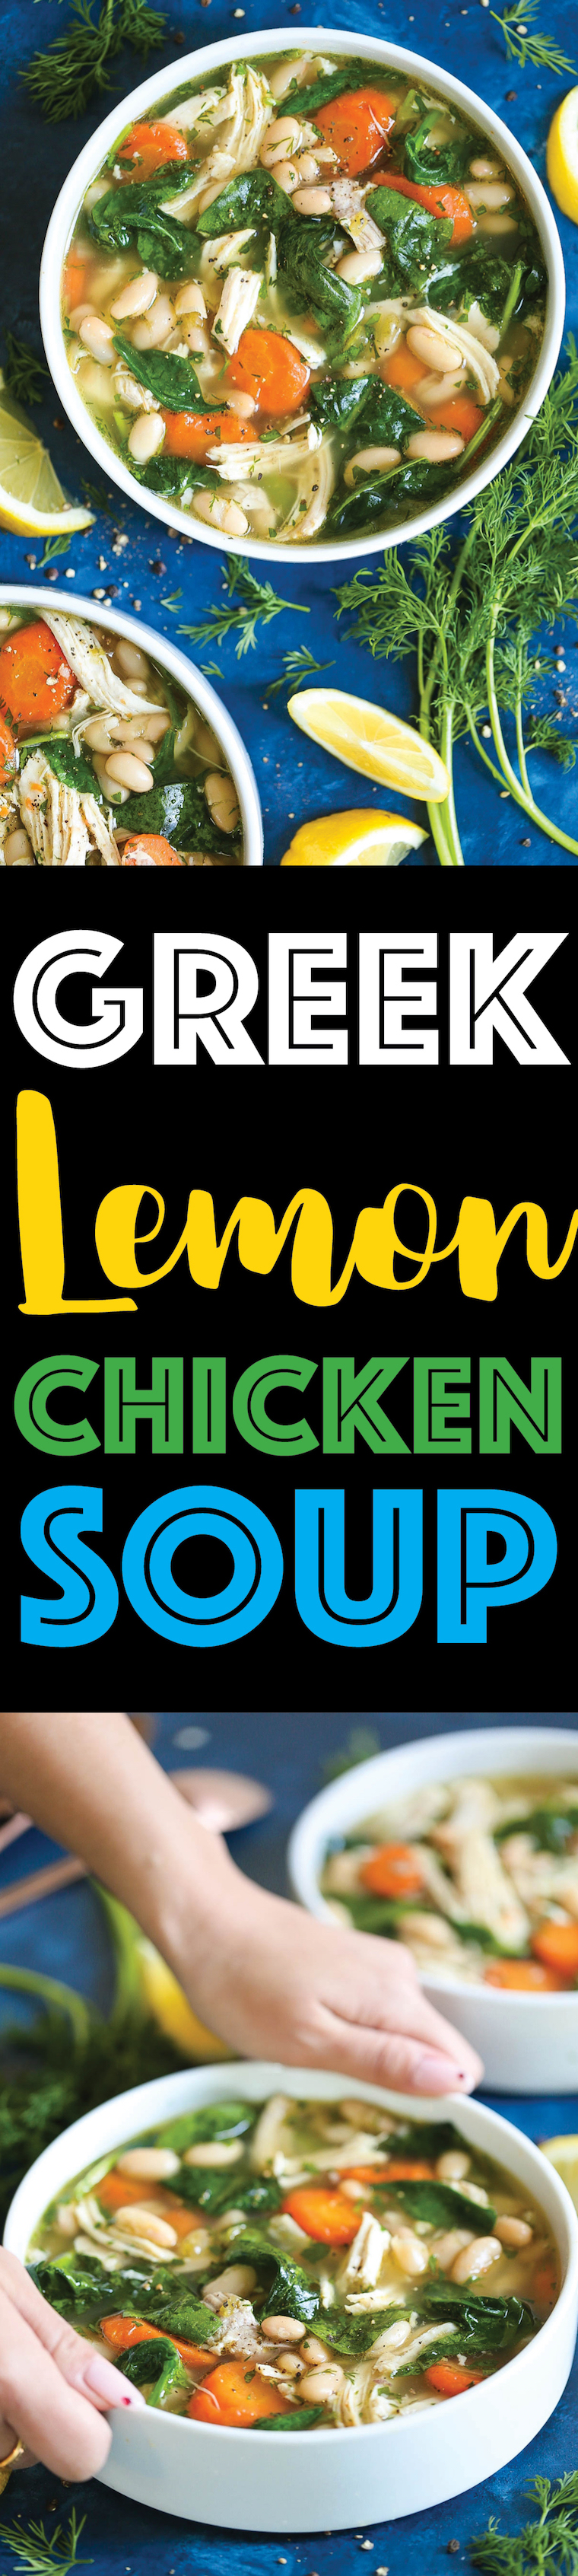 Greek Lemon Chicken Soup - A quick and easy 30 minute chicken soup – so cozy and comforting! We swap out the noodles for cannellini beans for added protein and fiber with way less calories! And the added lemon juice is so refreshing and vibrant!